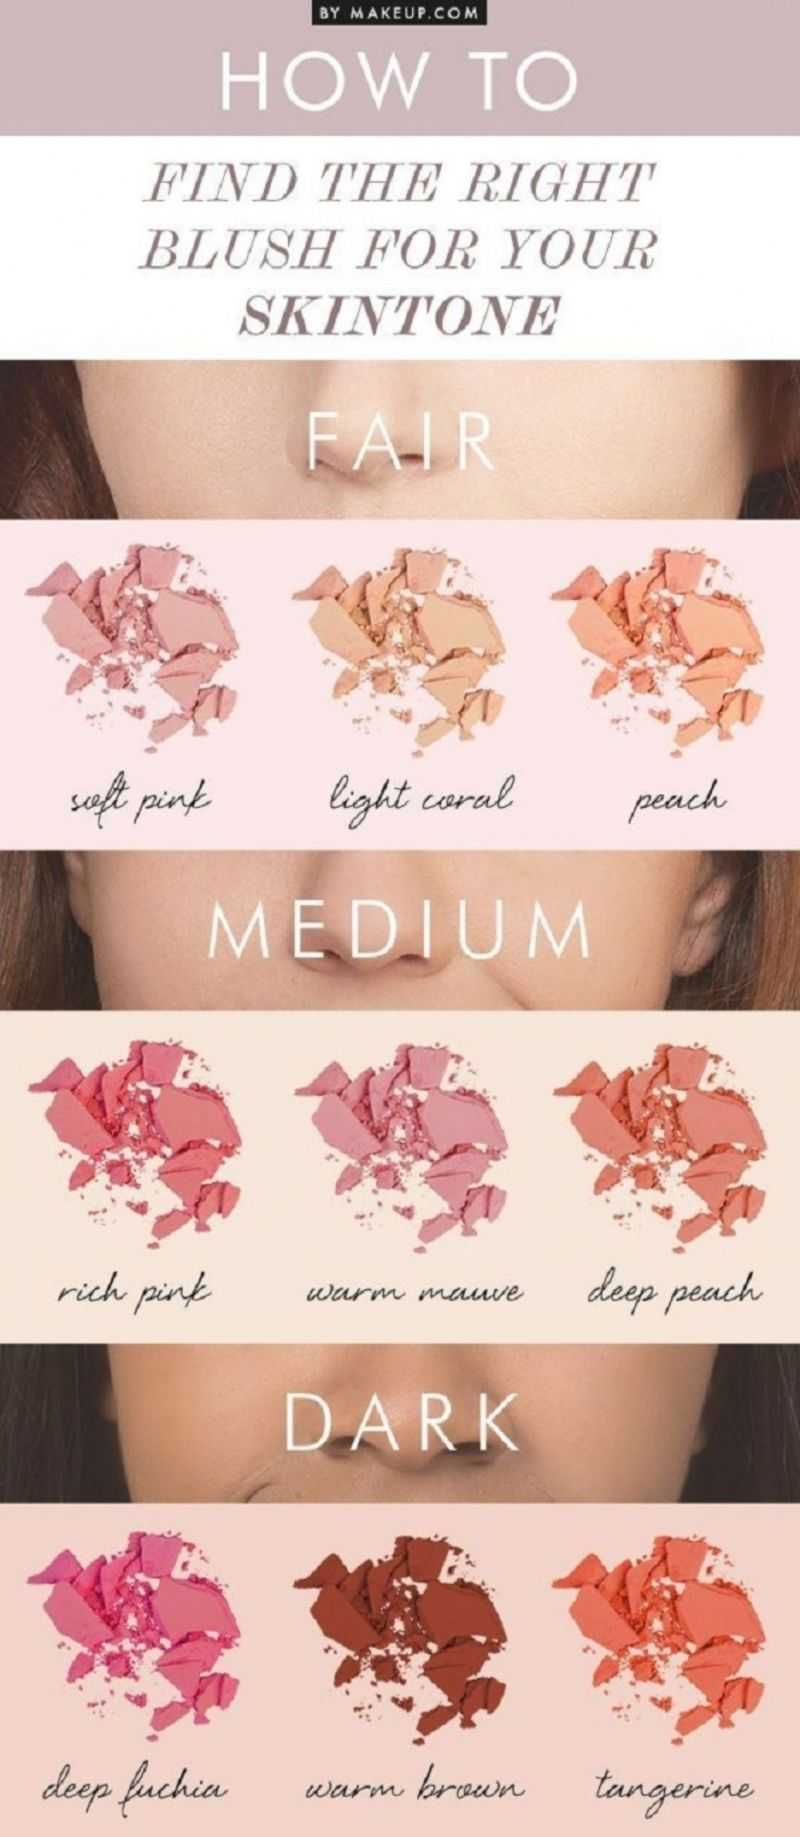 Find The Right Blush For Your Skin Tone